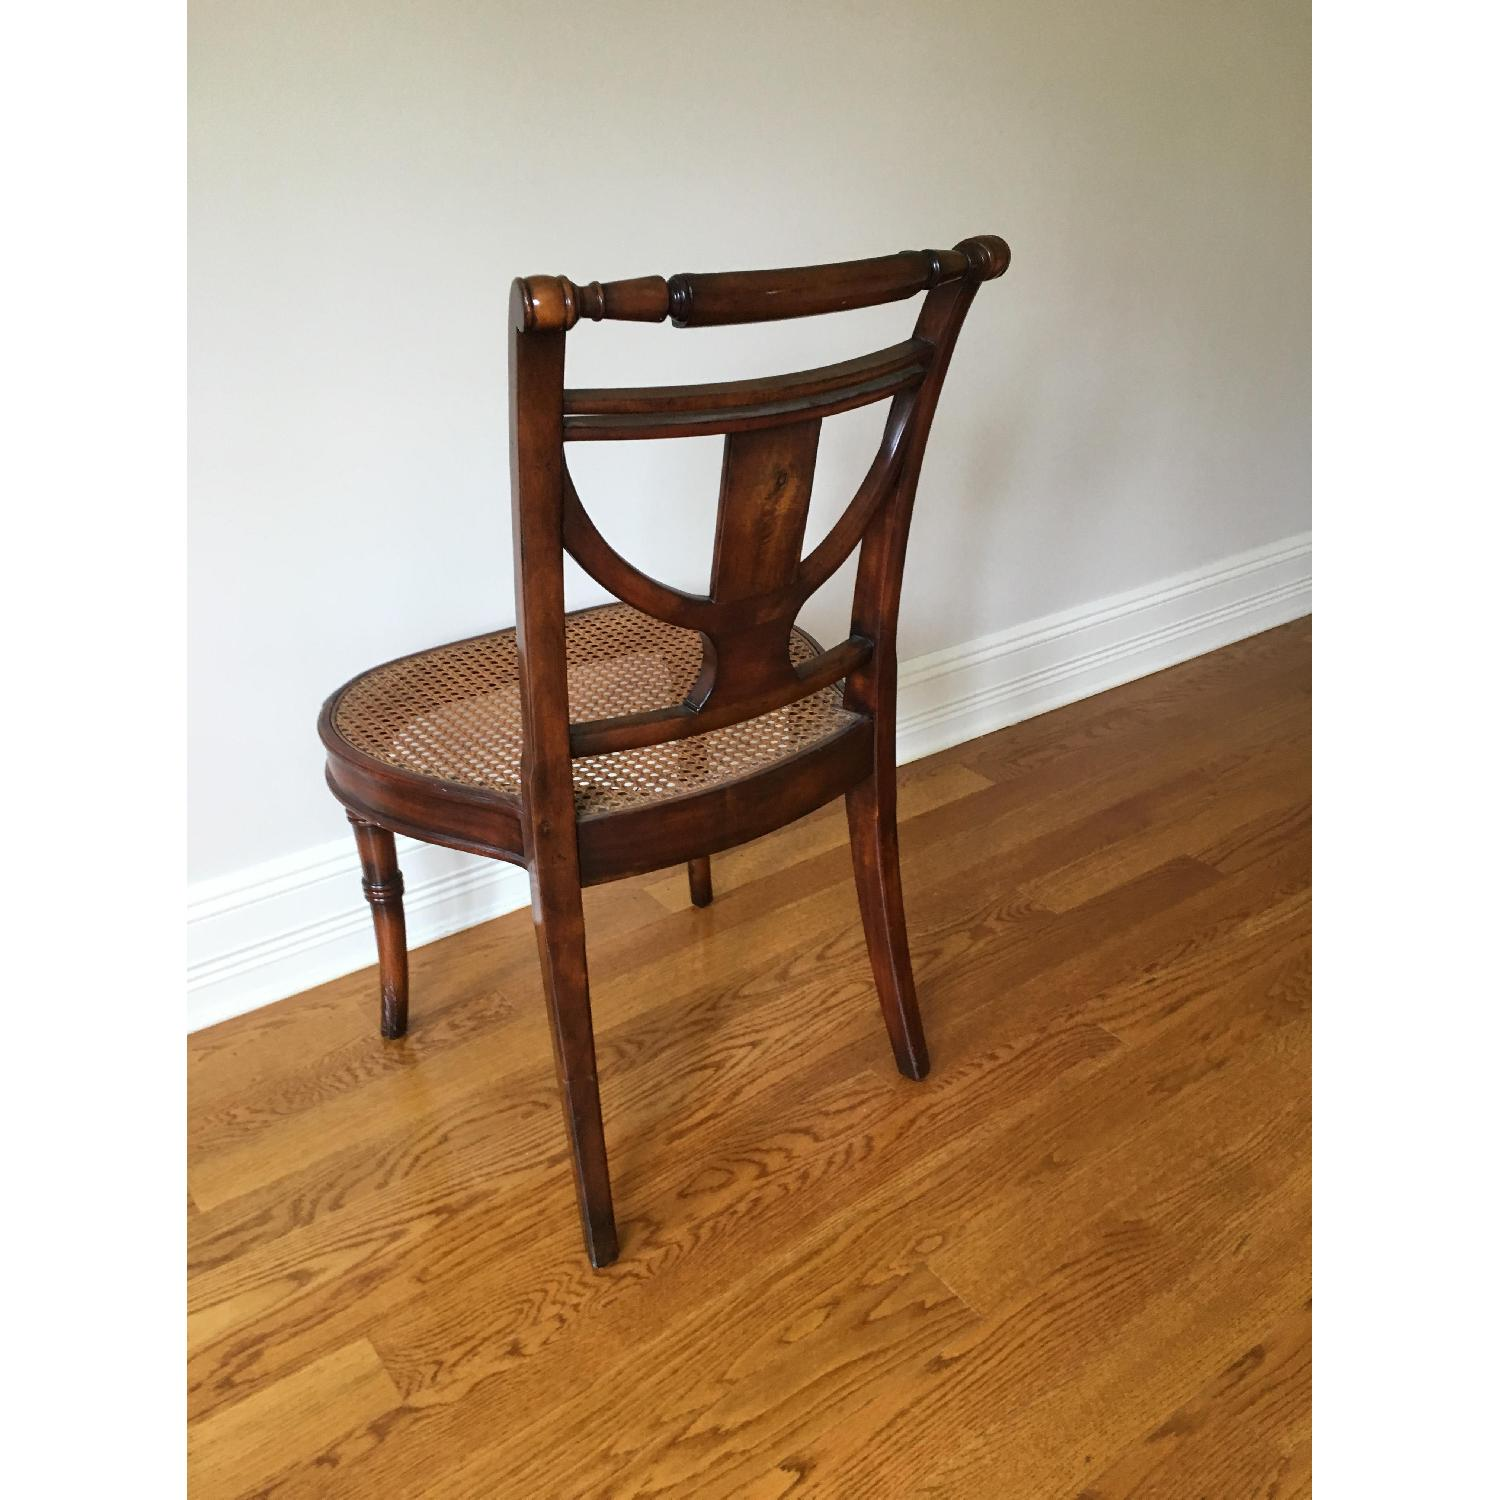 Hand Caned Chair - image-7